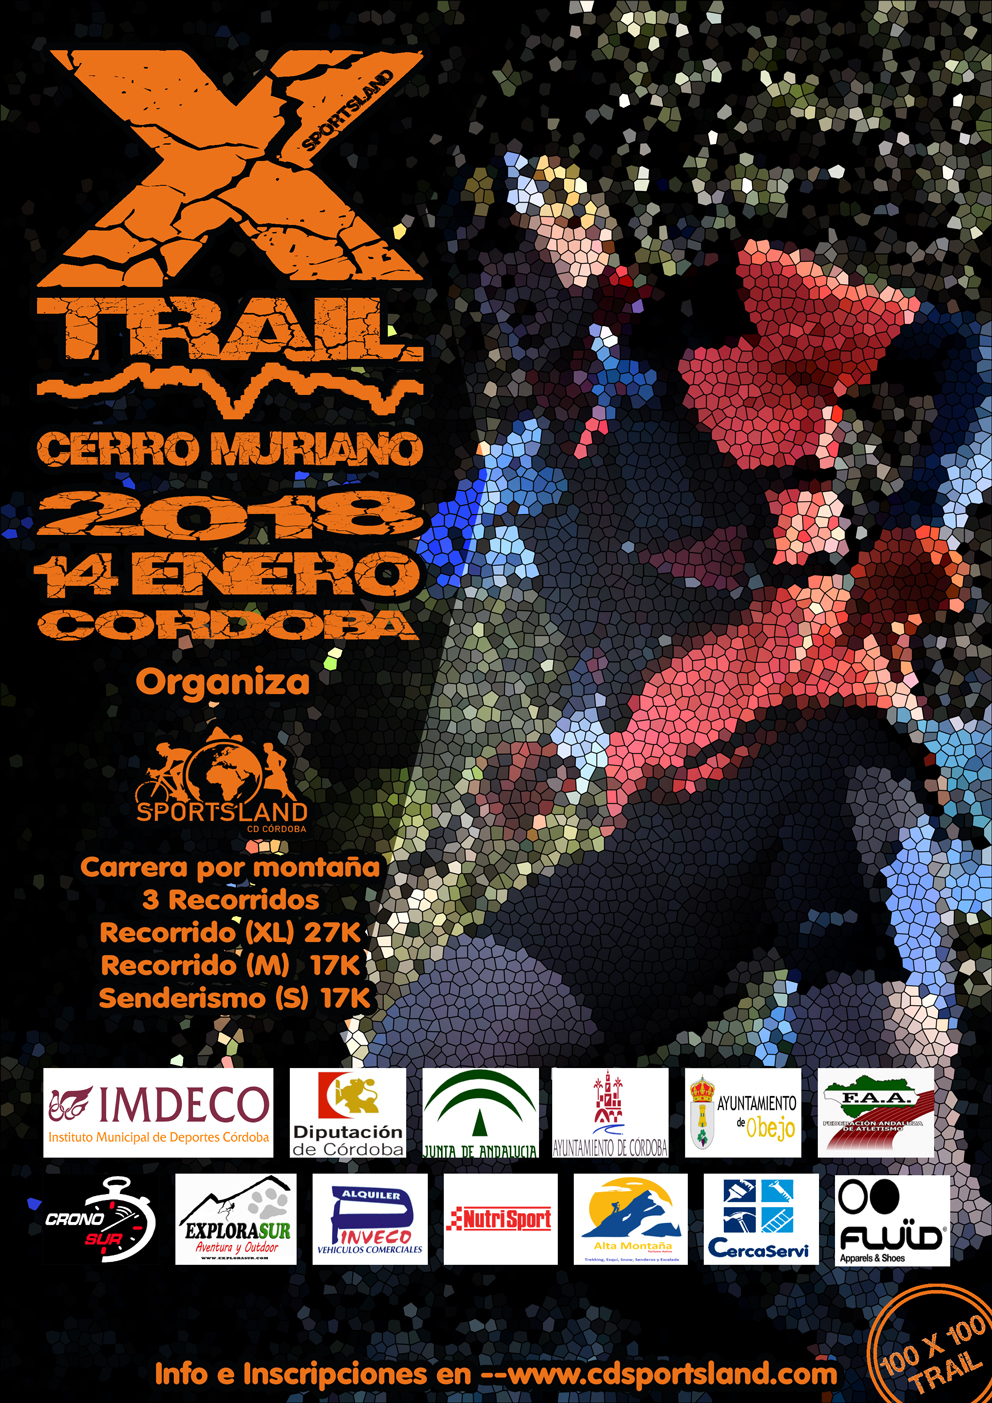 Cartel-Xtrail-2018 (1).jpg FAT